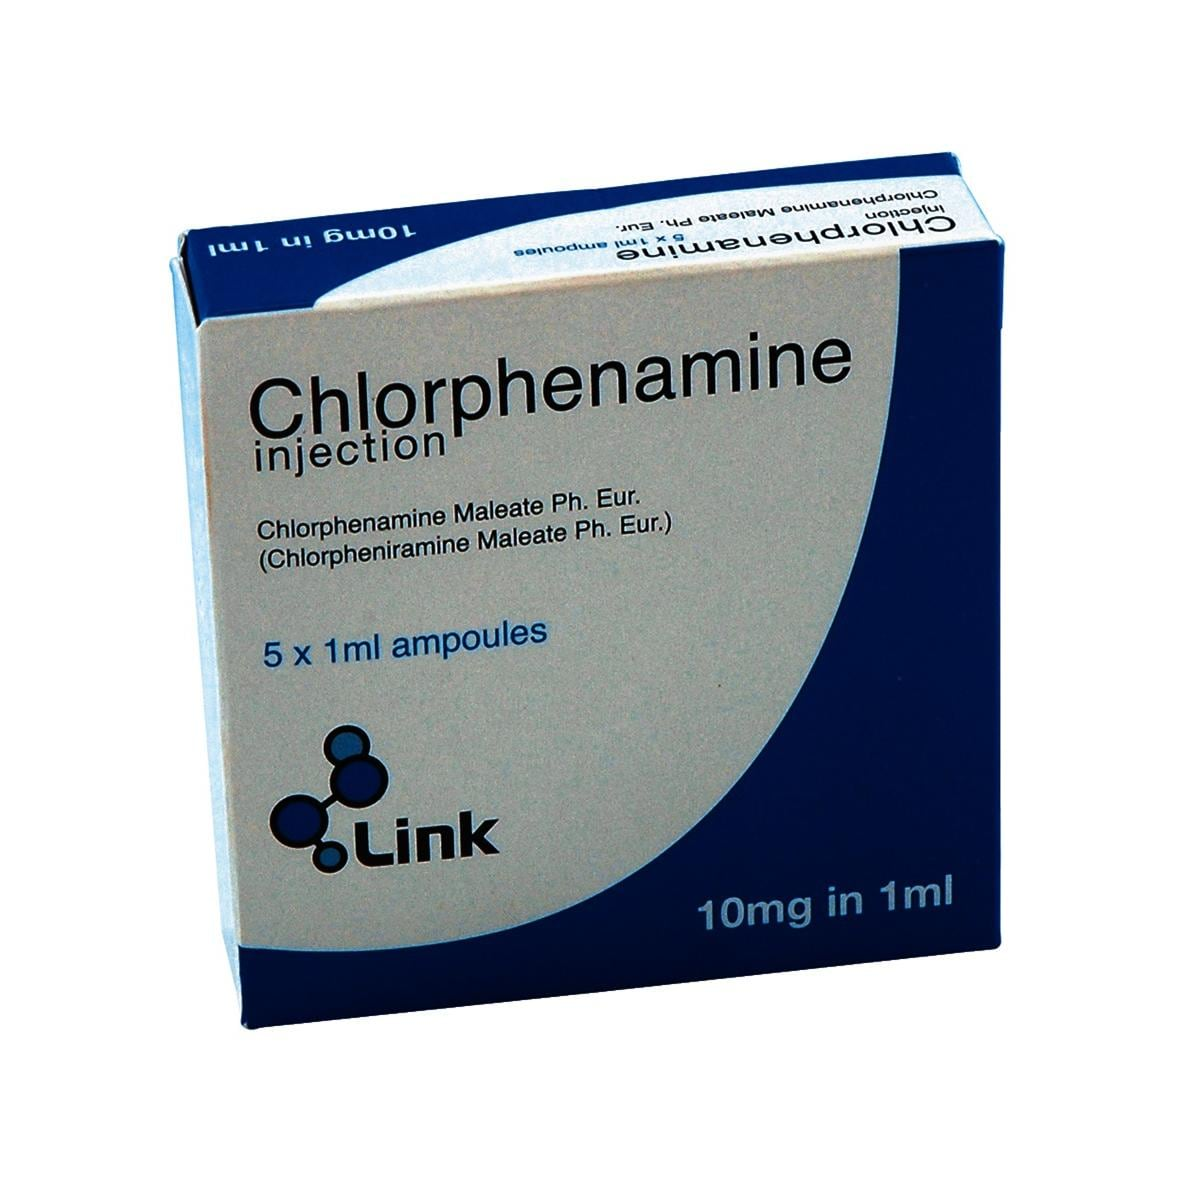 Chlorphenamine Injection 10mg/1ml Amp 5pk UK ONLY